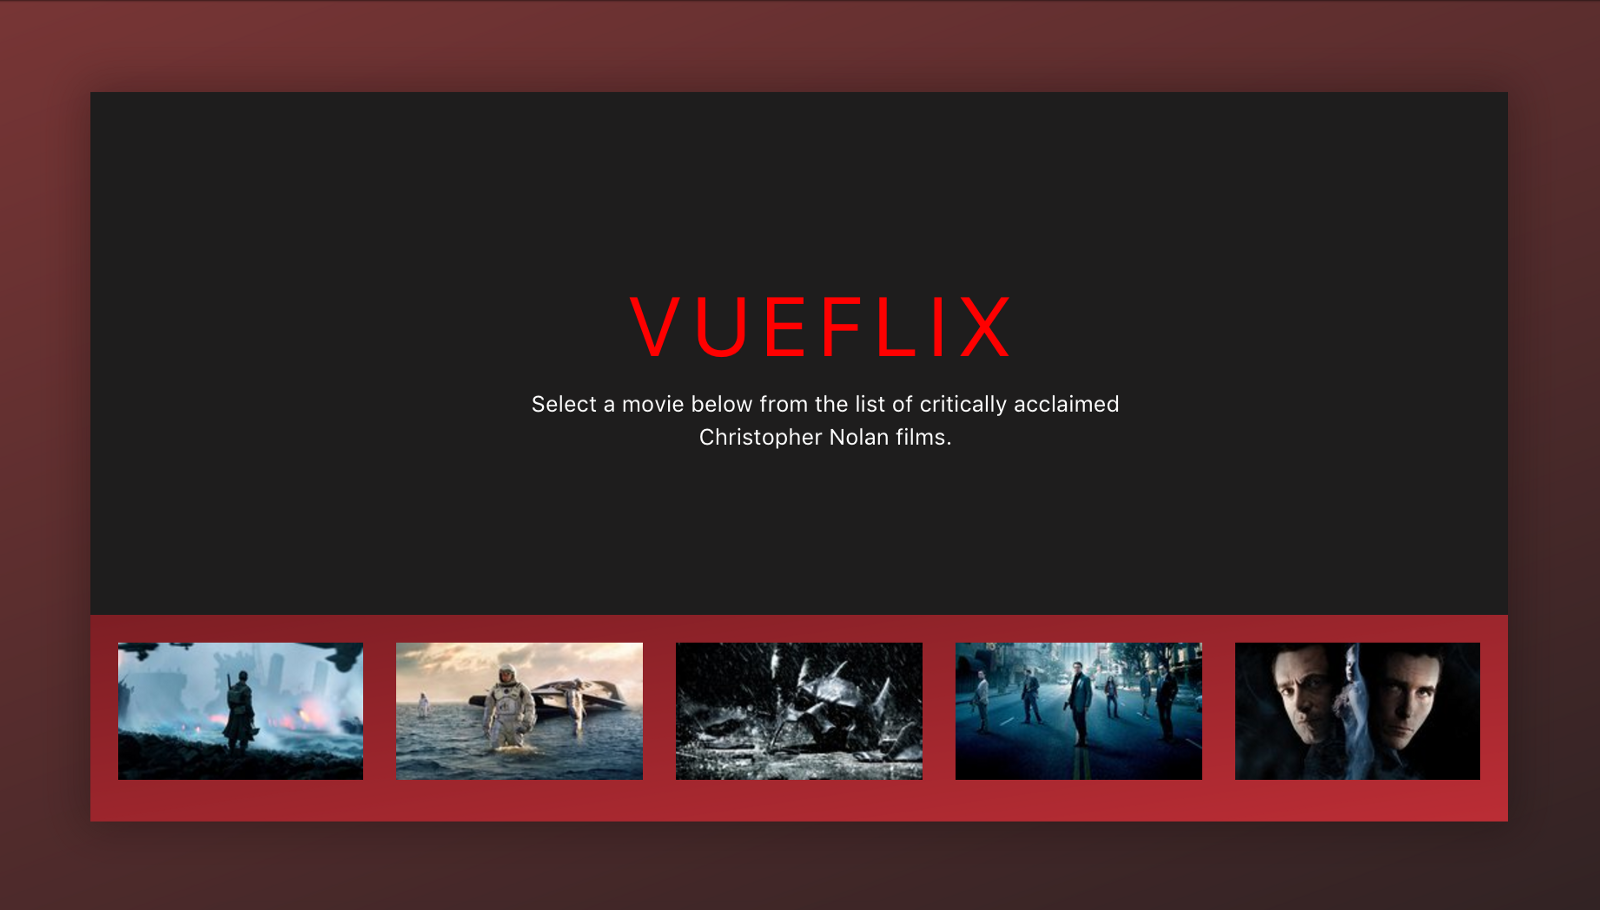 Building a movie app interface with Vue js - By